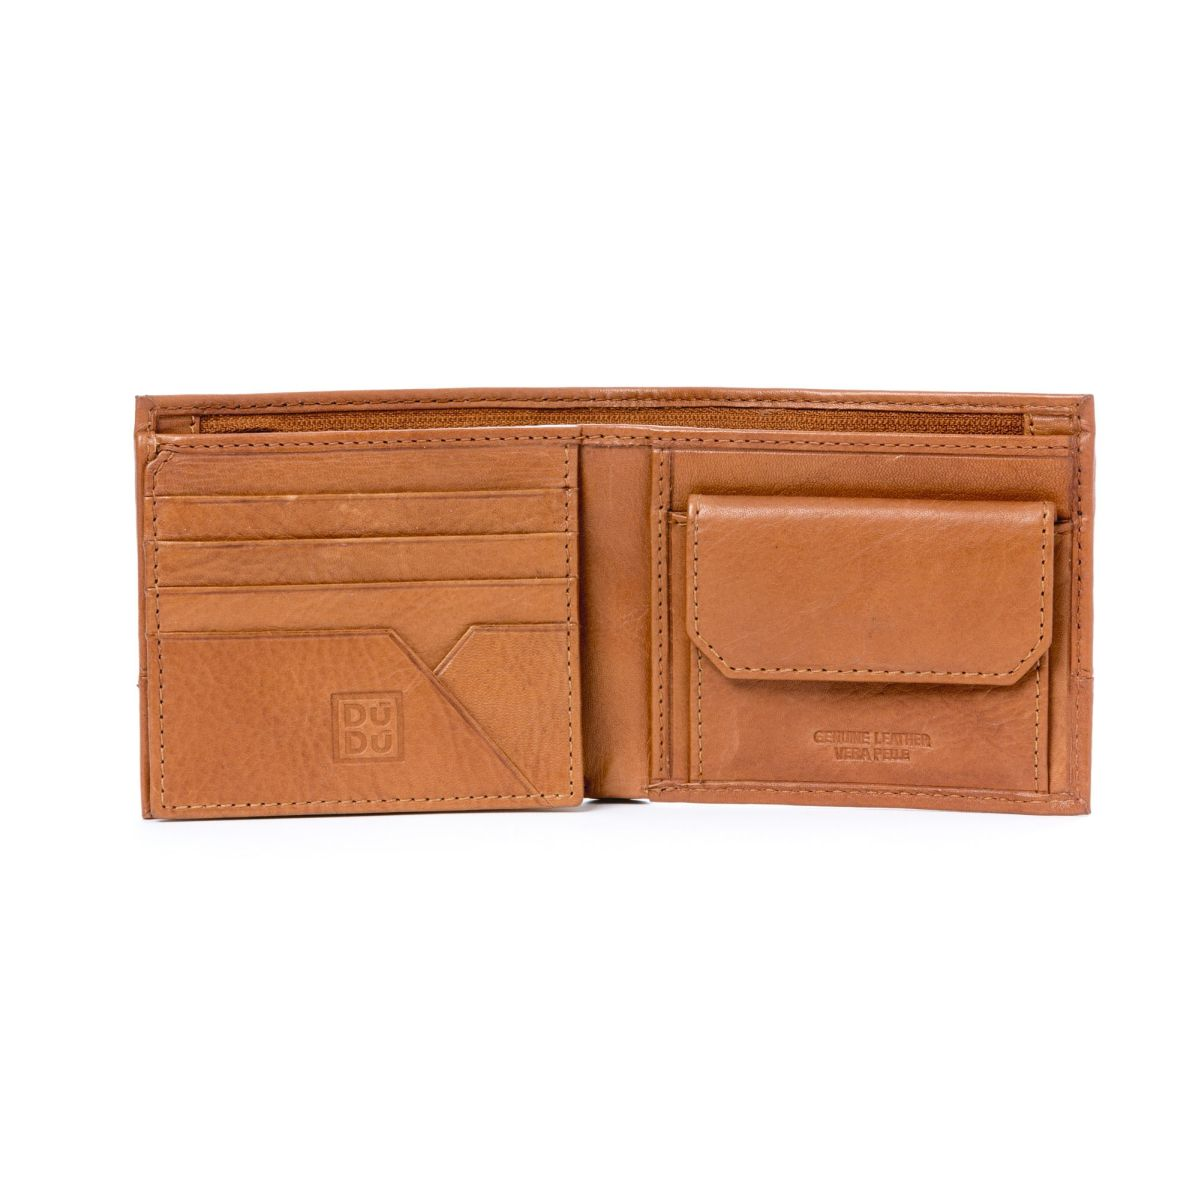 DuDu Unique Leather Wallet With Coin Purse - Light Brown